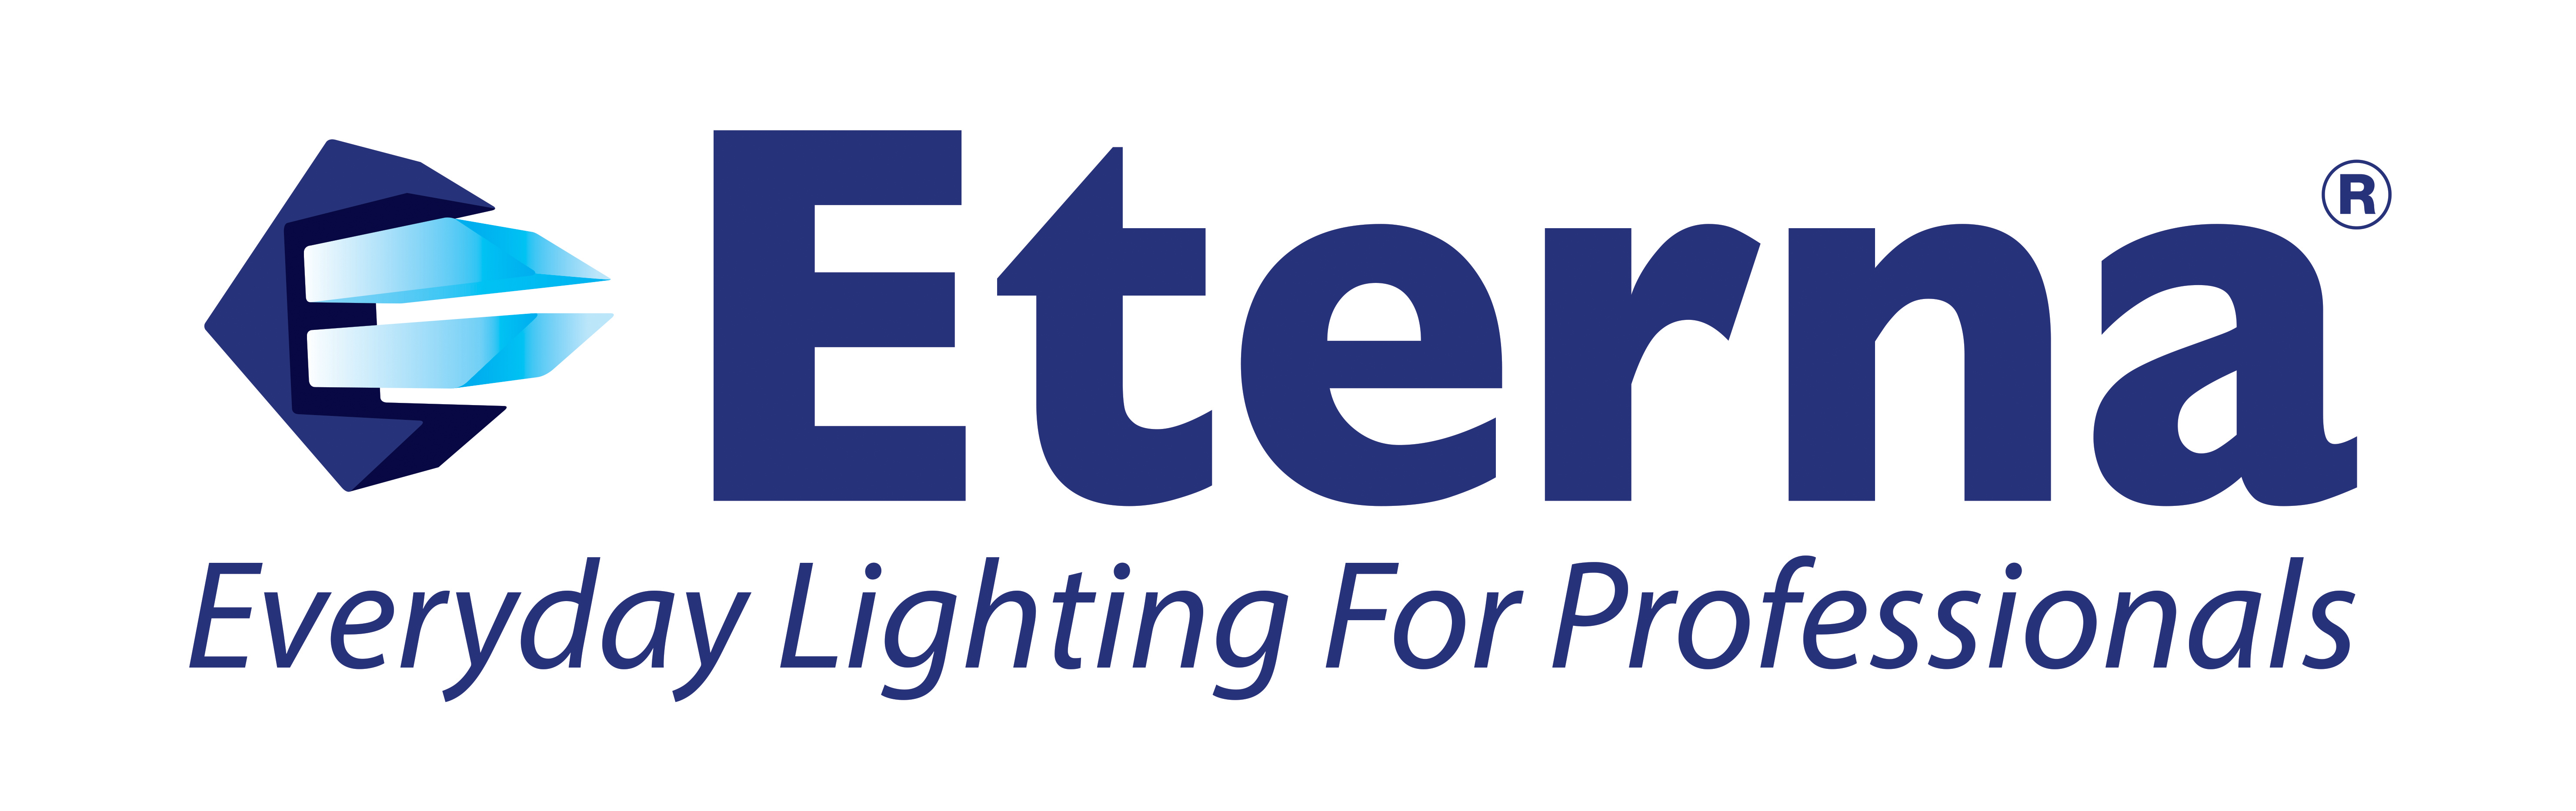 Alert Electrical - Eterna Lighting Products